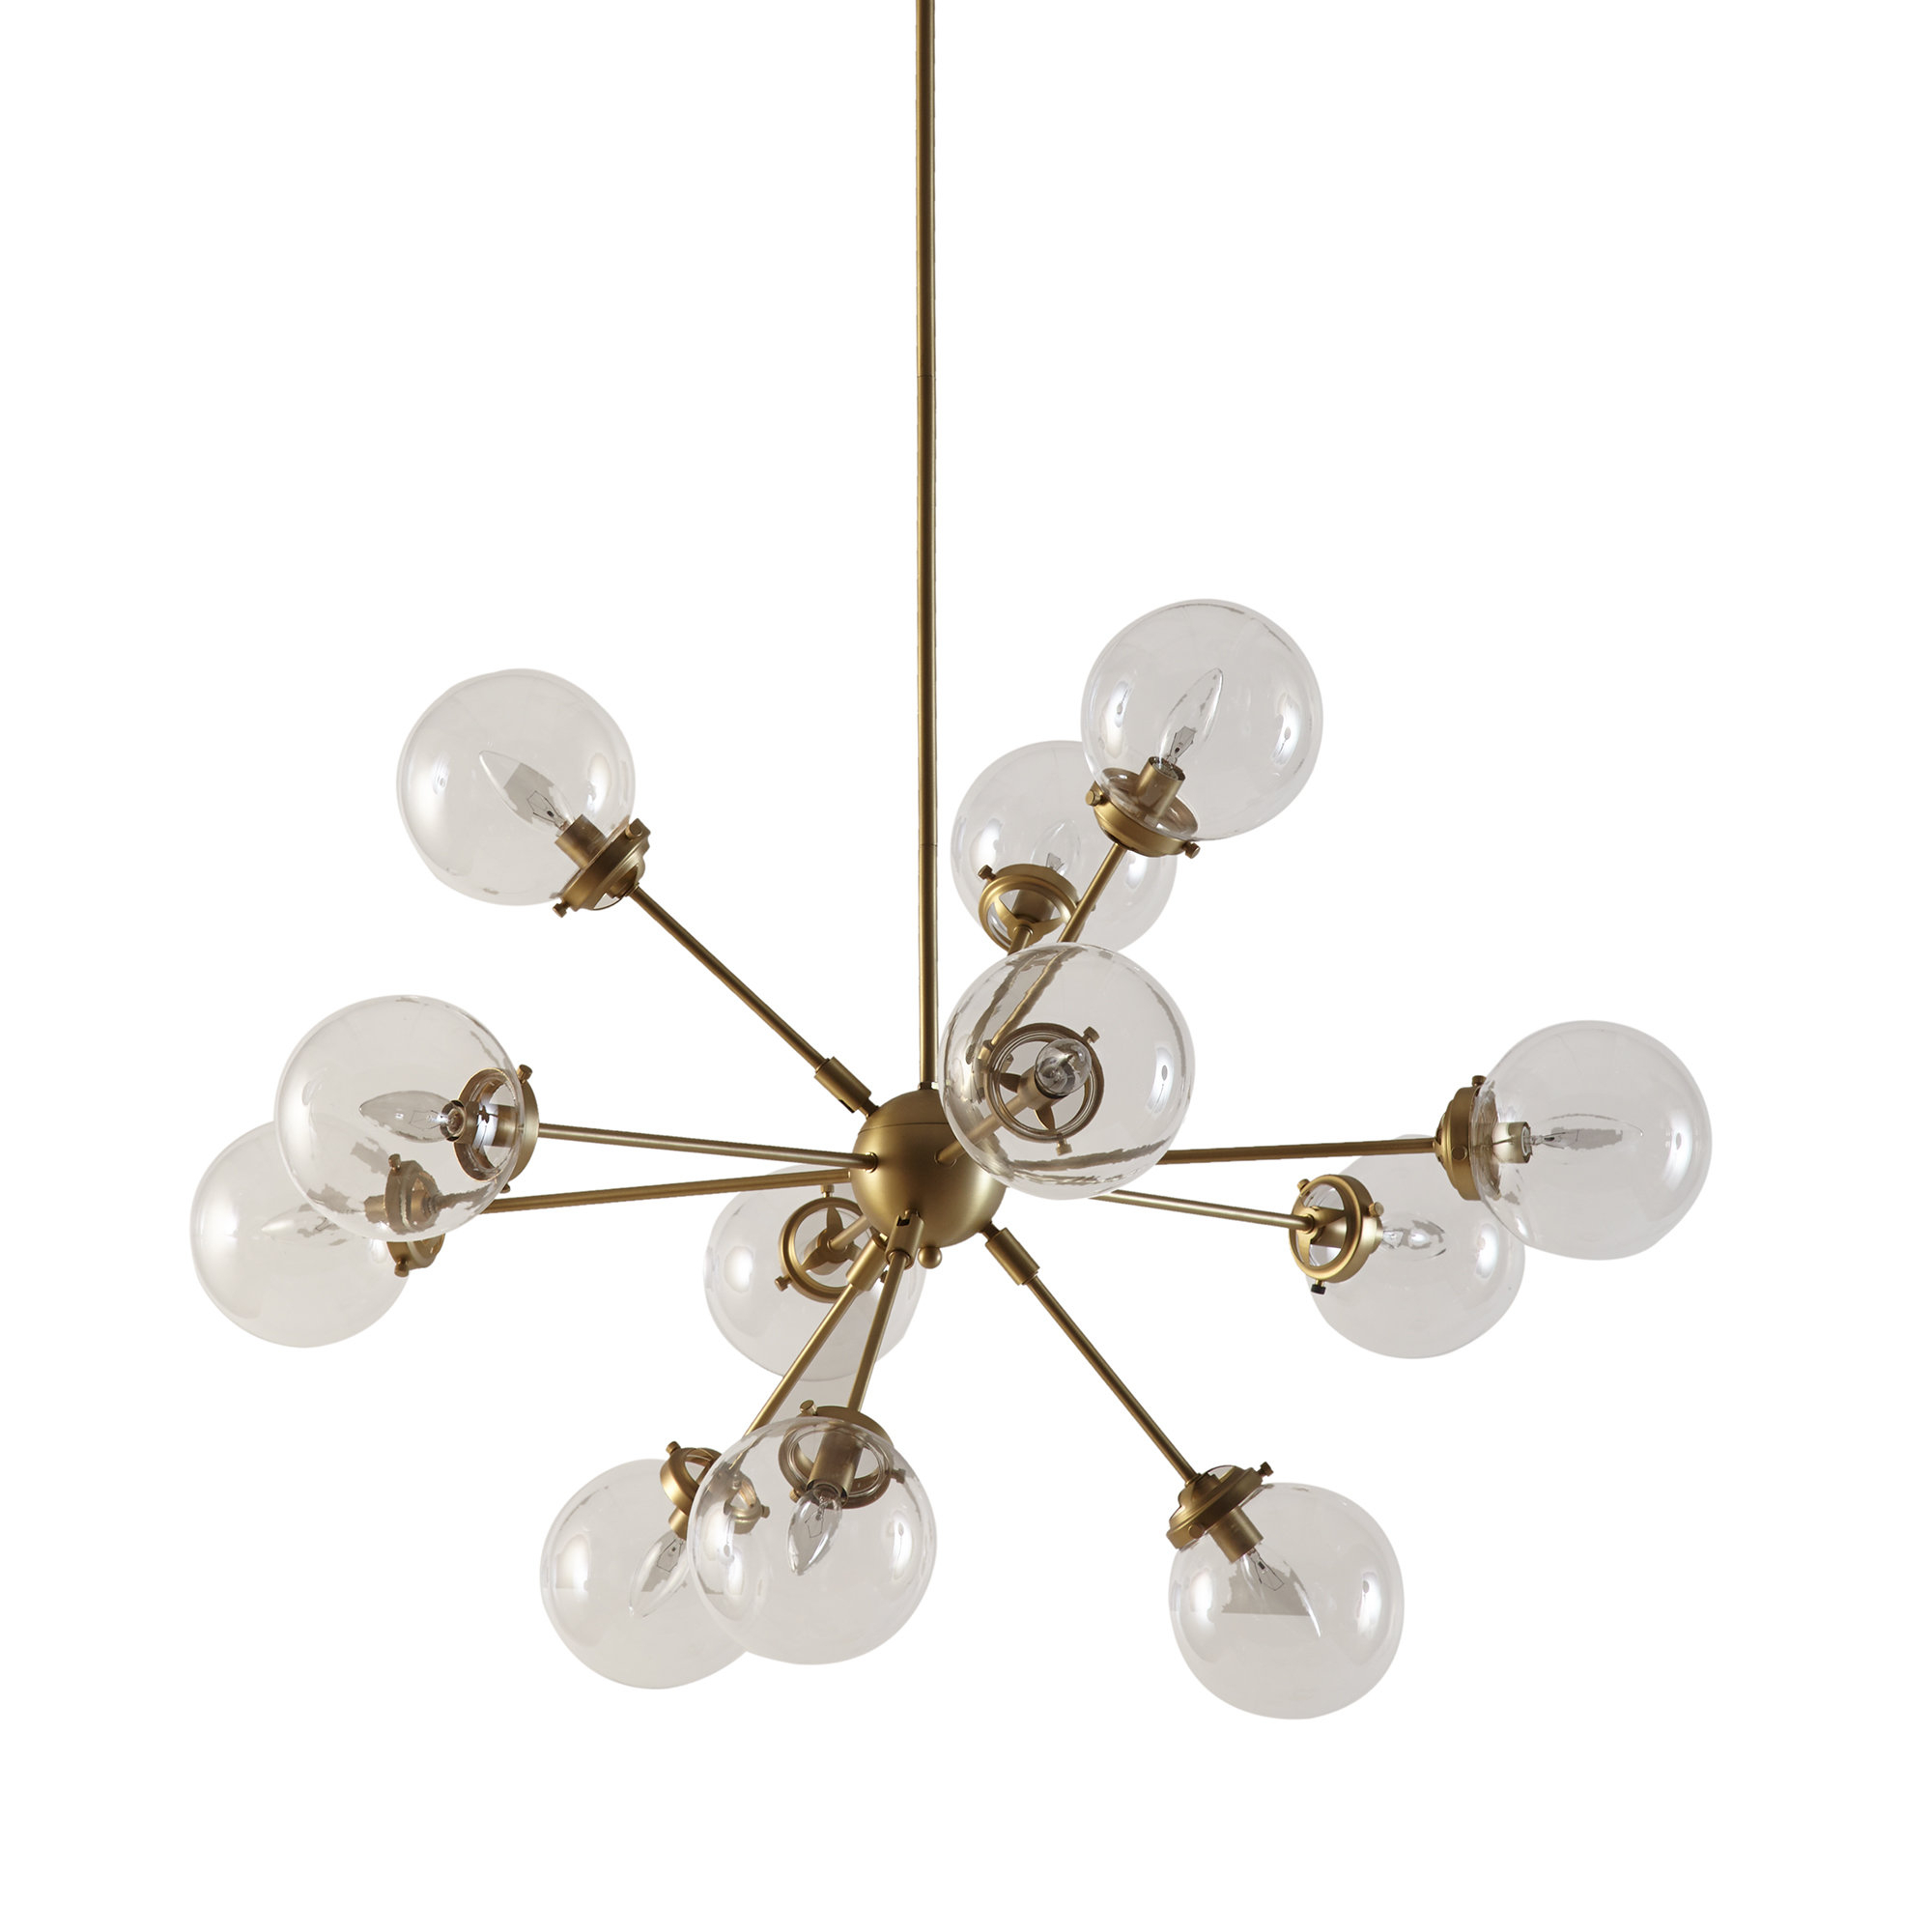 Asher 12 Light Sputnik Chandelier Intended For Corona 12 Light Sputnik Chandeliers (View 11 of 30)